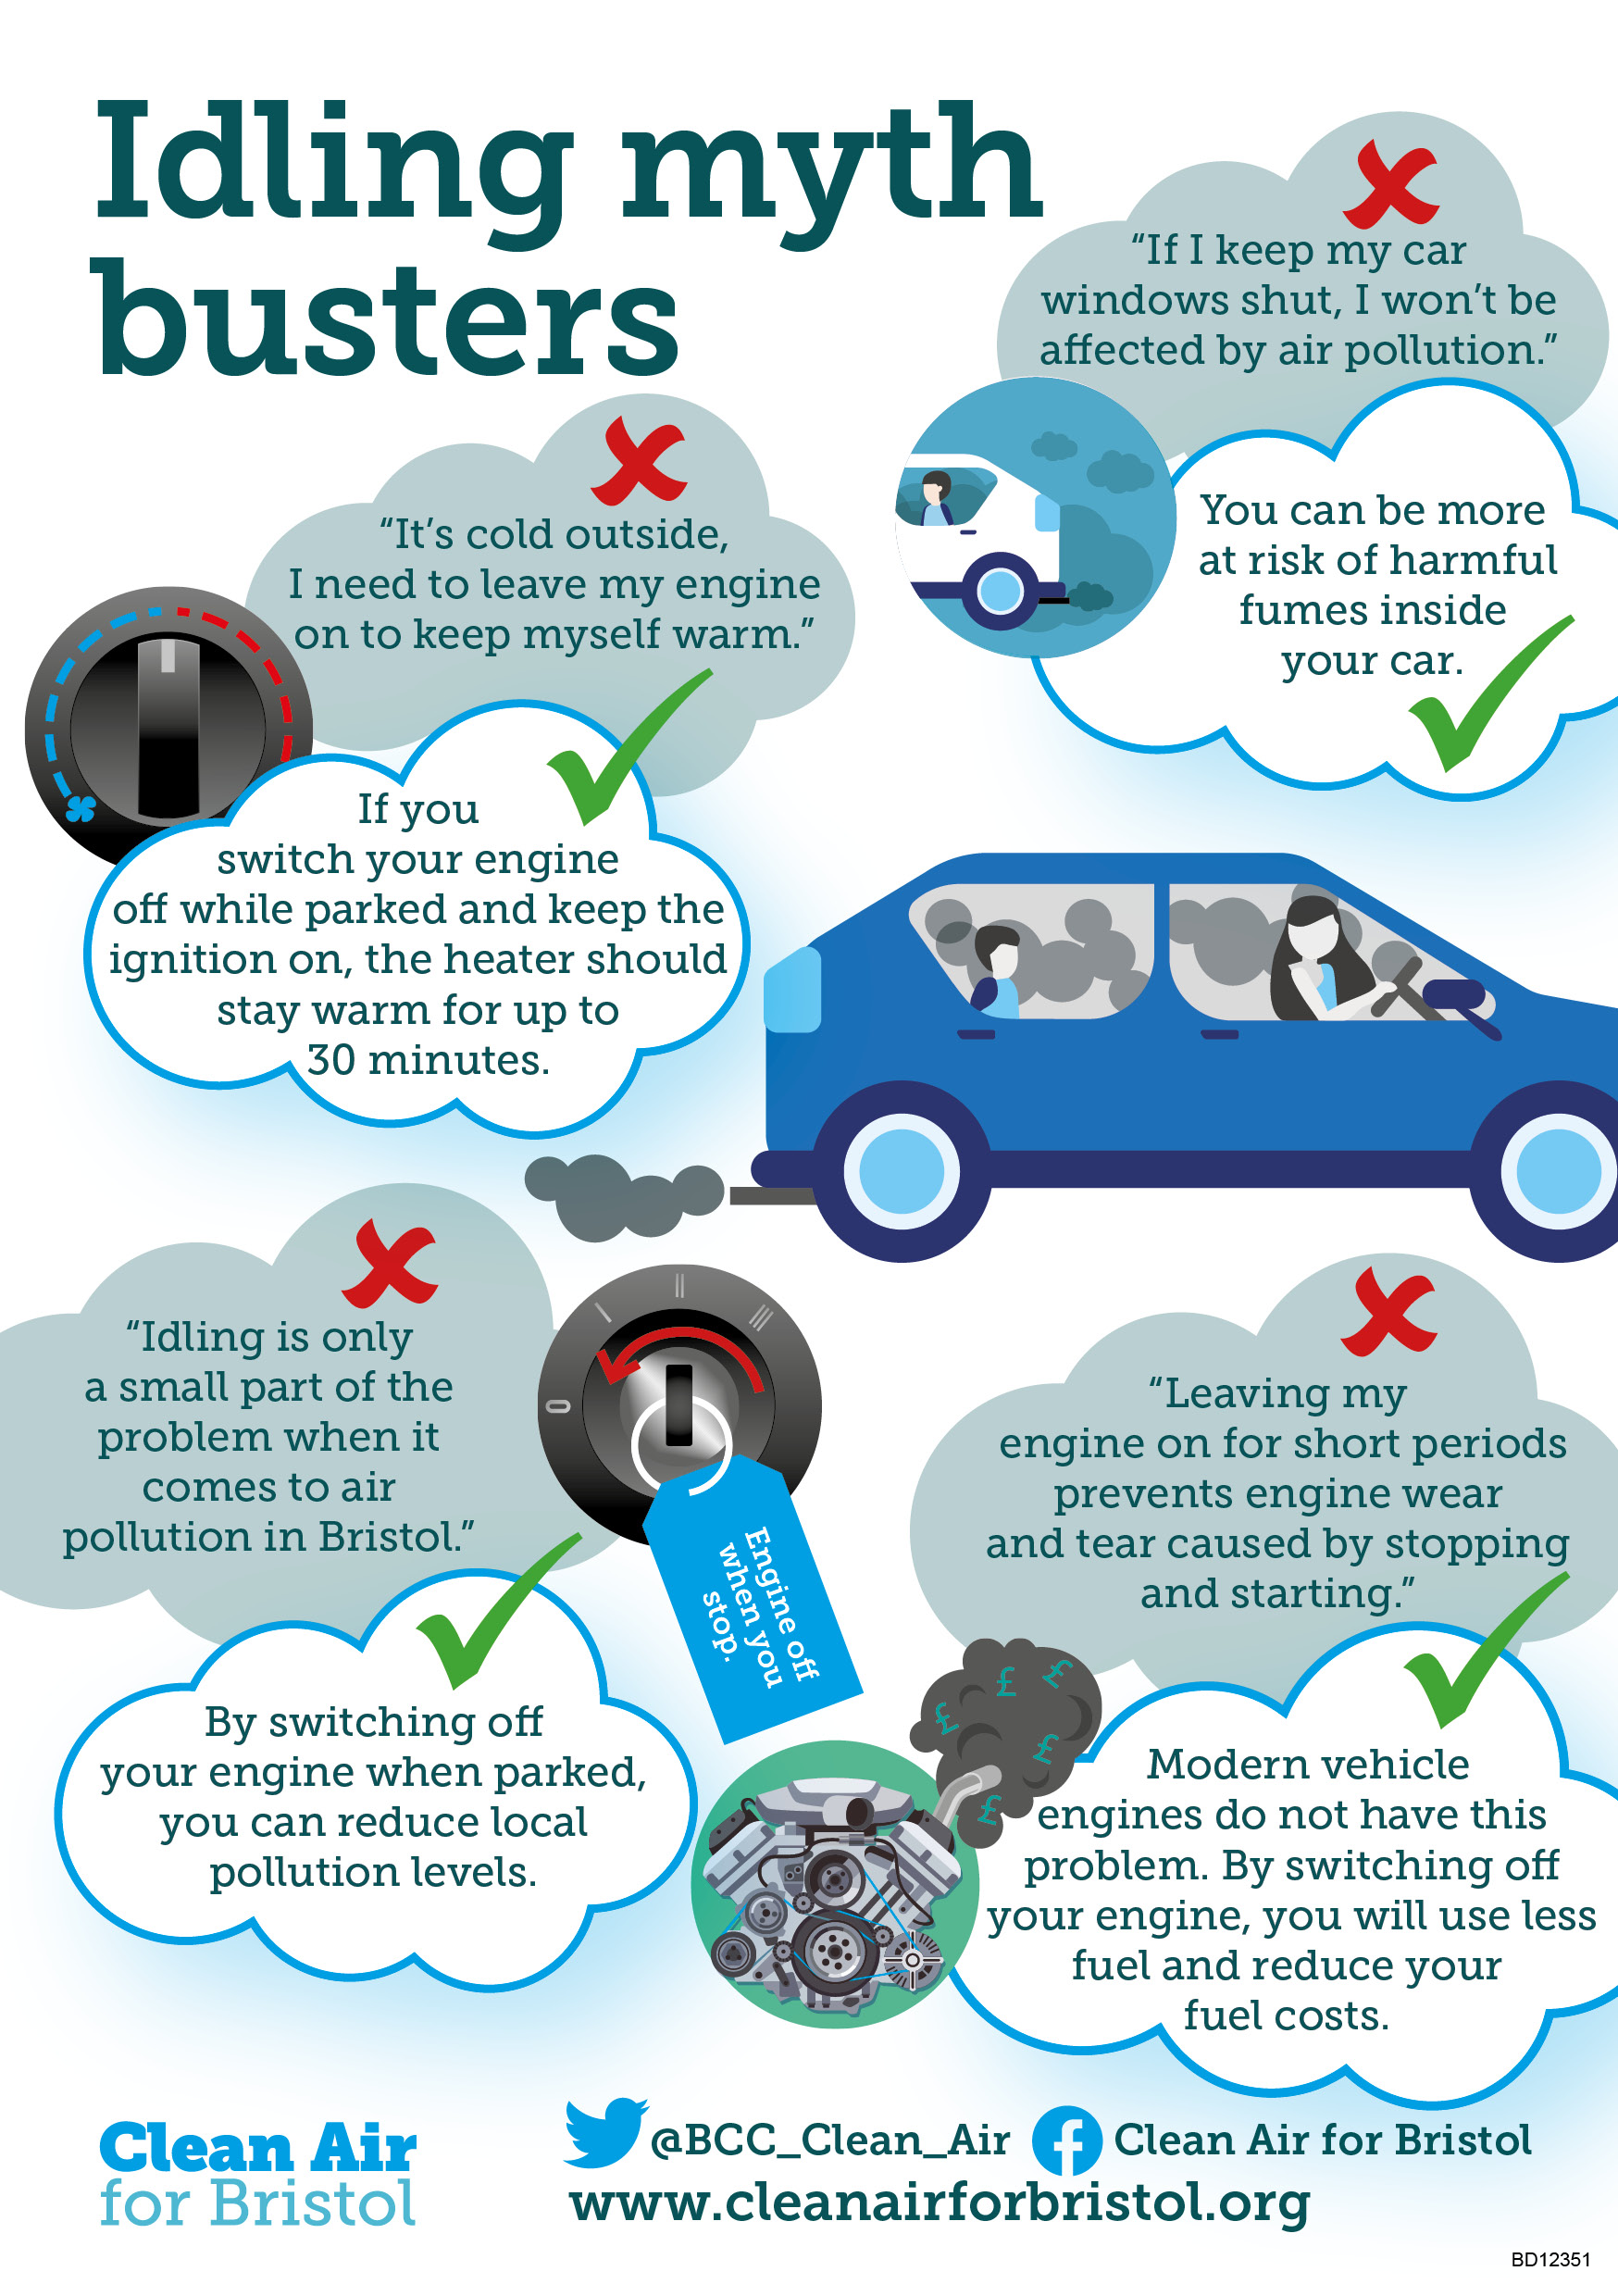 Idling myth busters poster